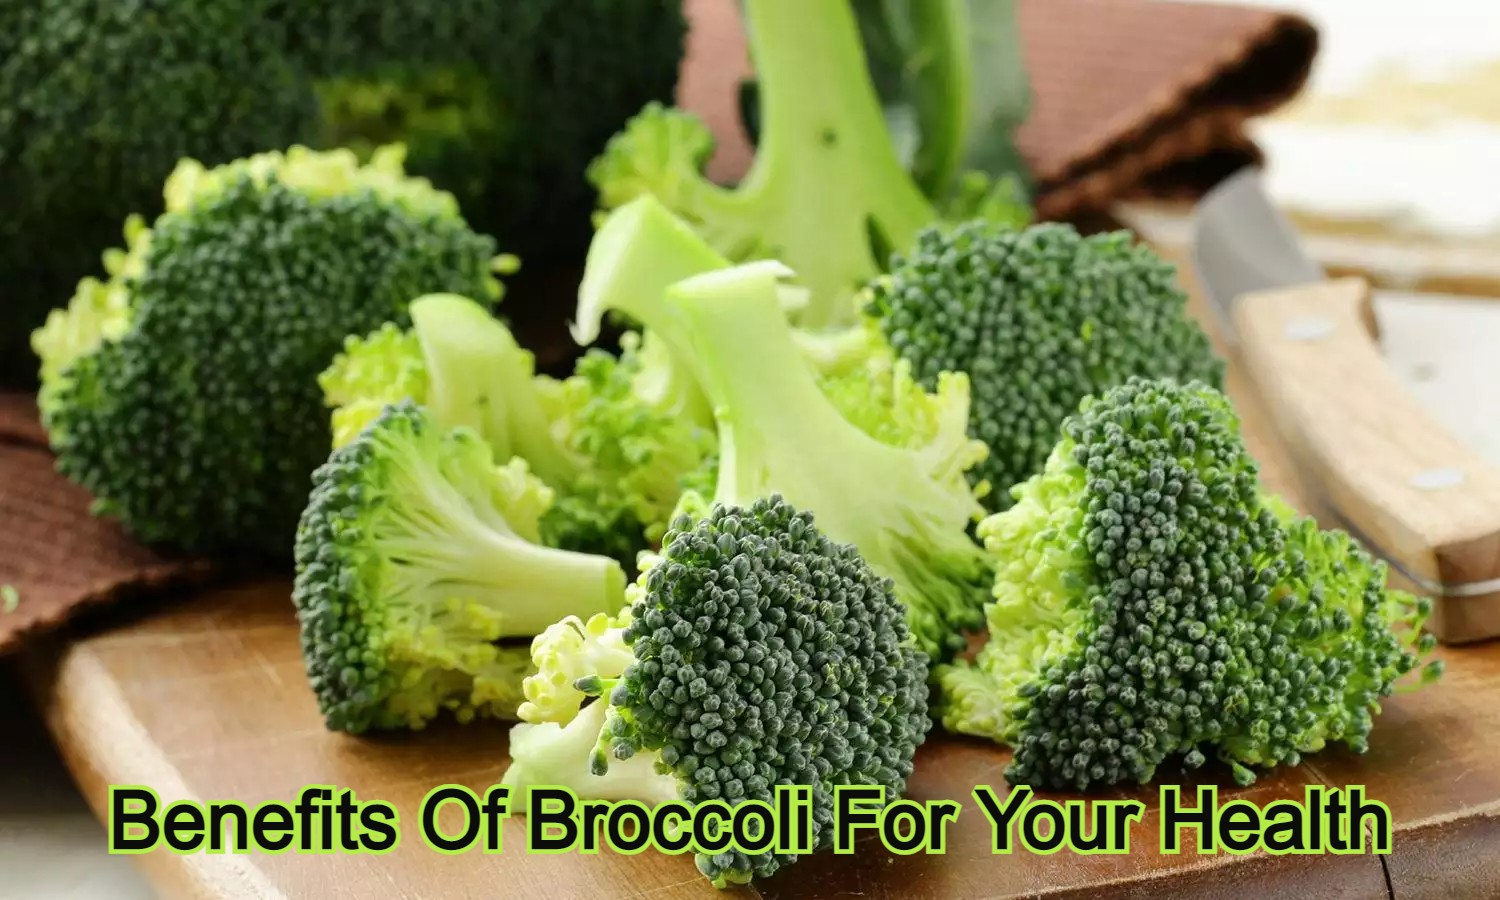 Benefits Of Broccoli For Your Health